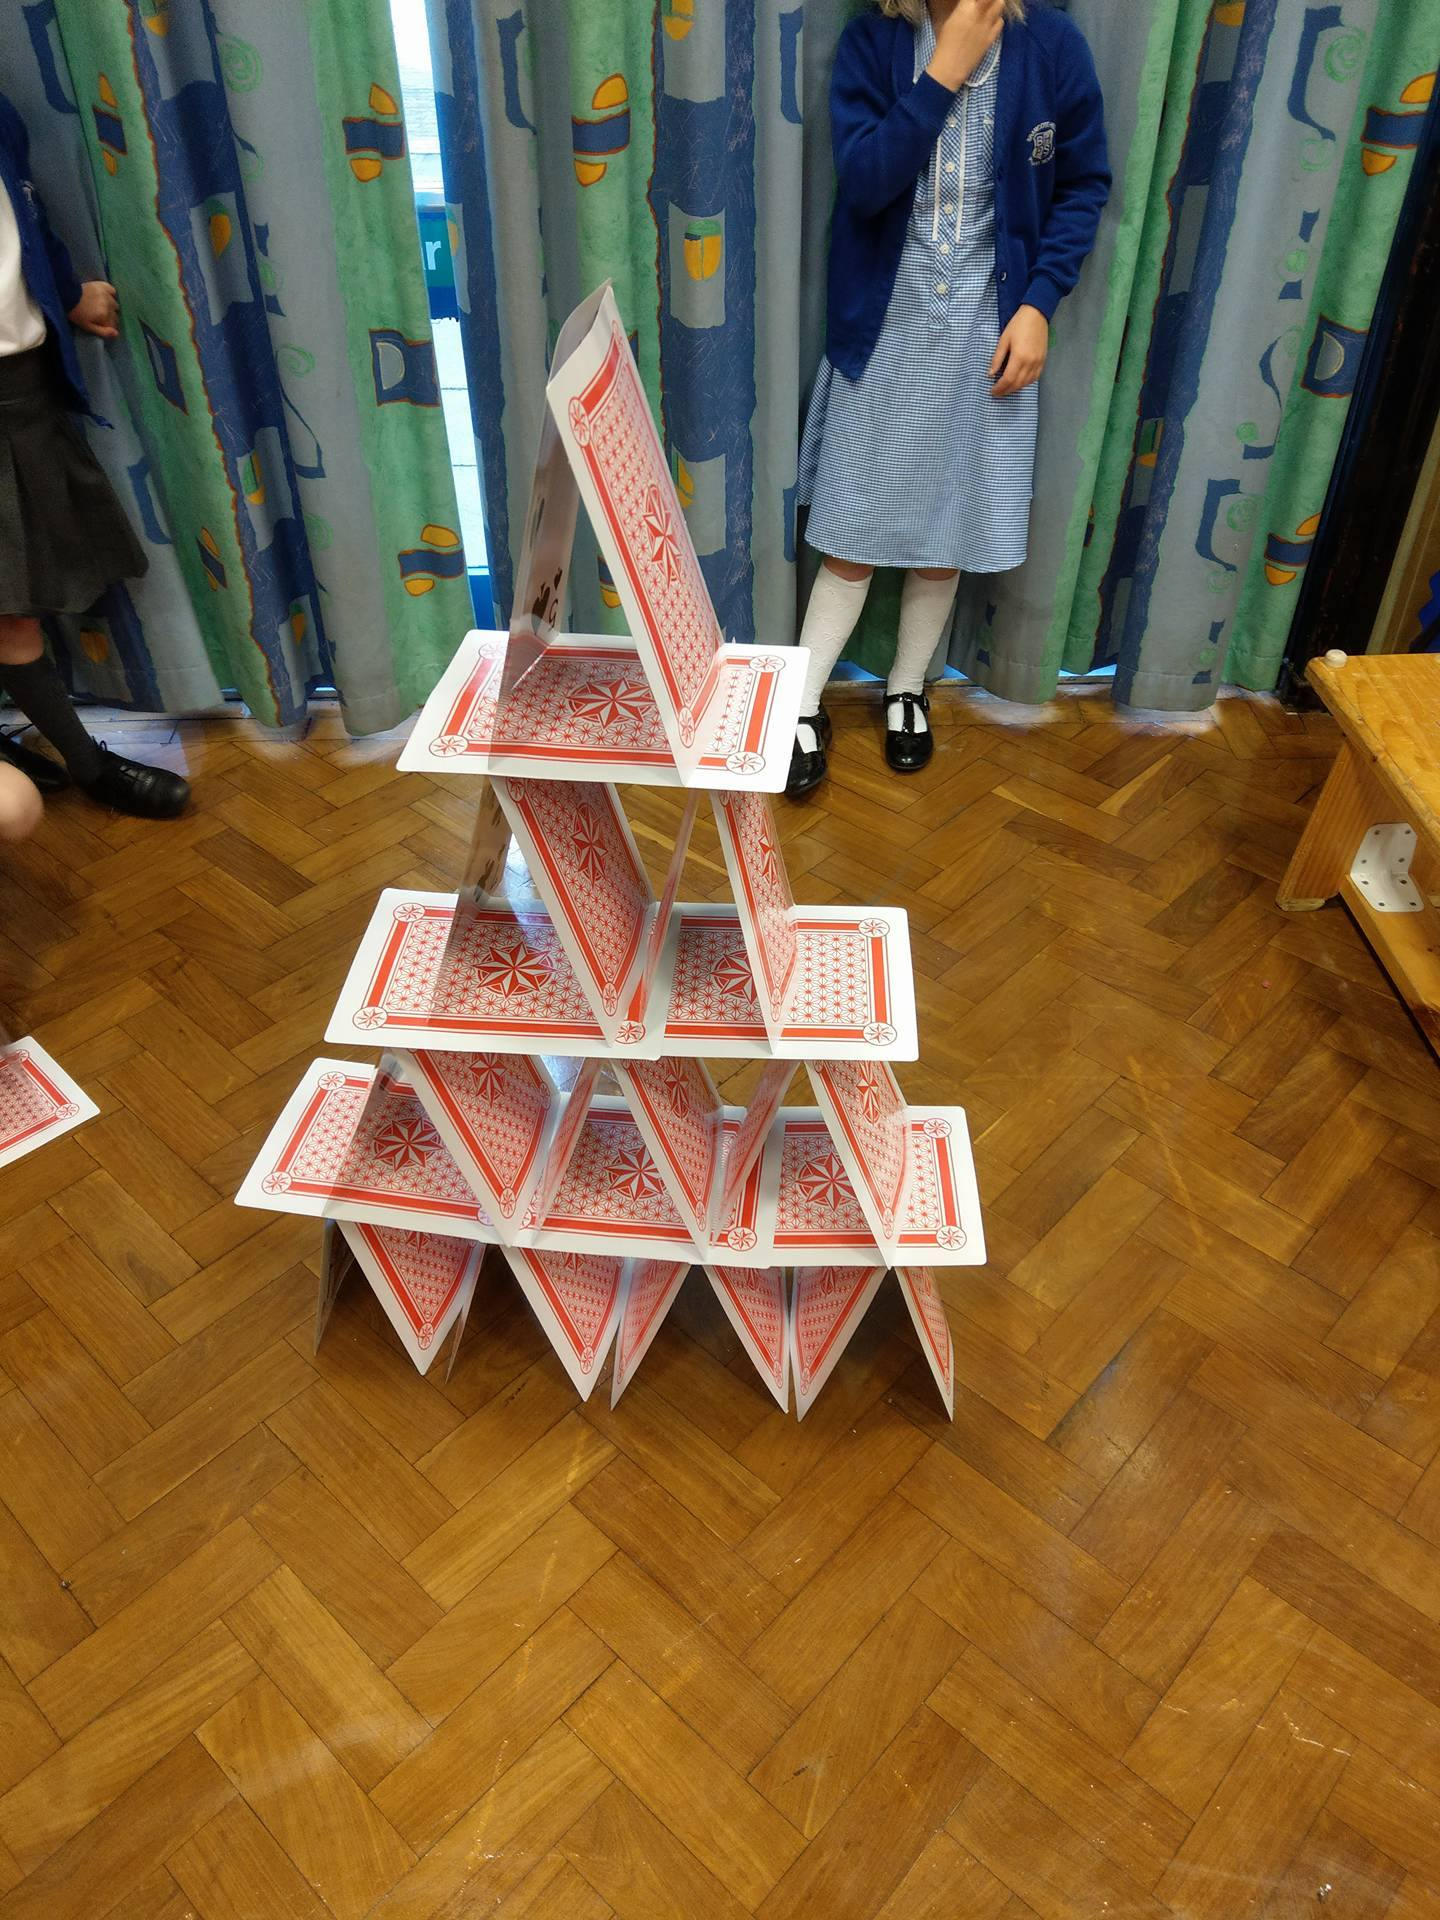 Best card tower ever!